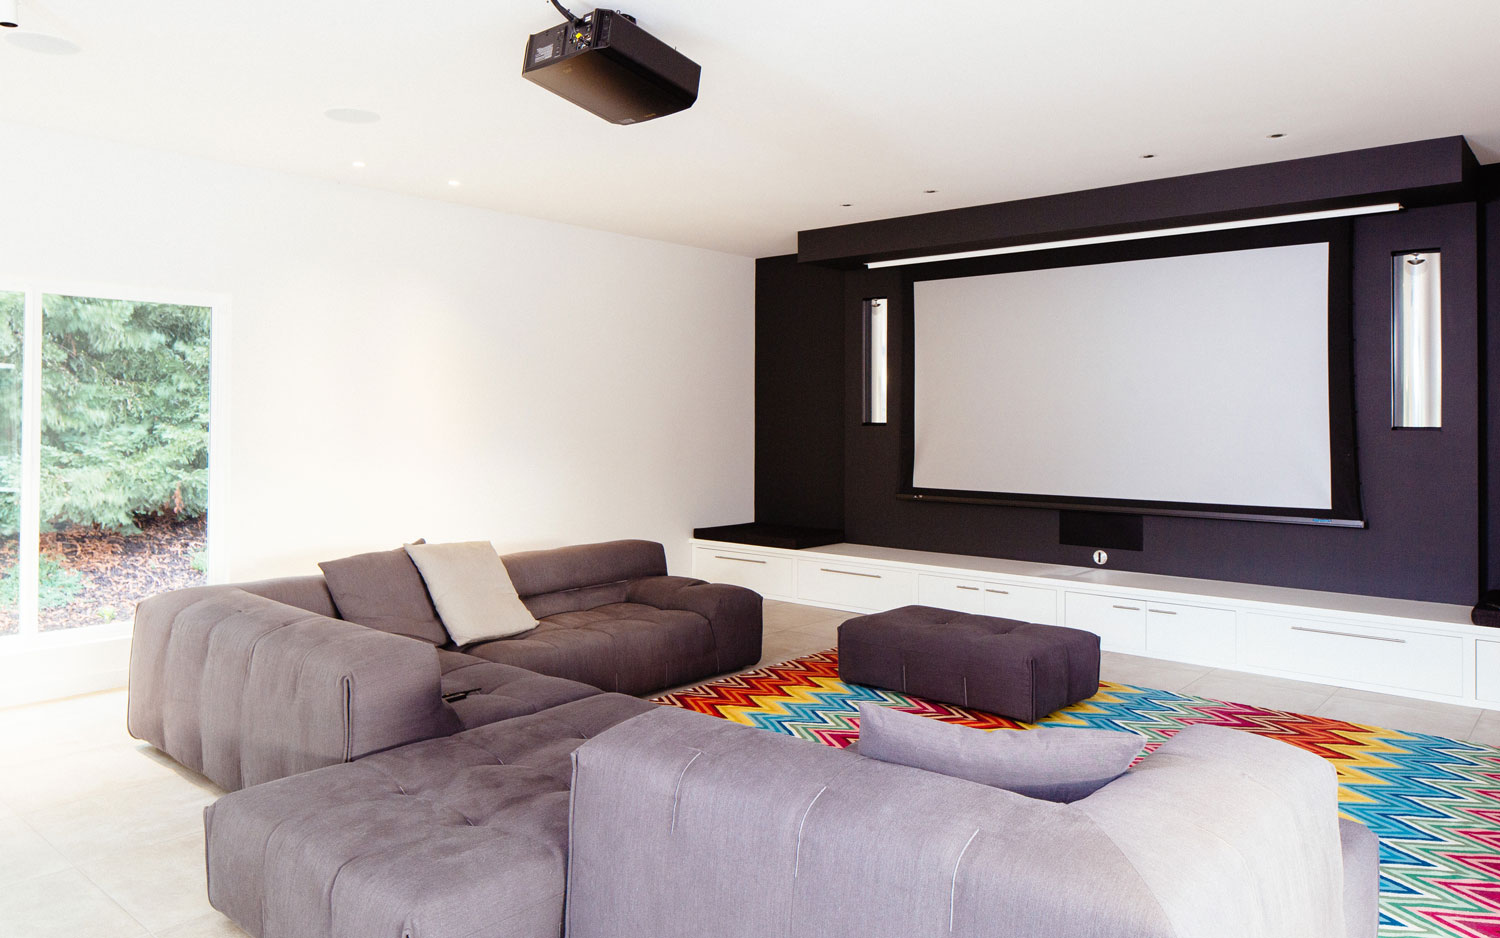 the tufty too sectional creates an informal seating area for the home theater.